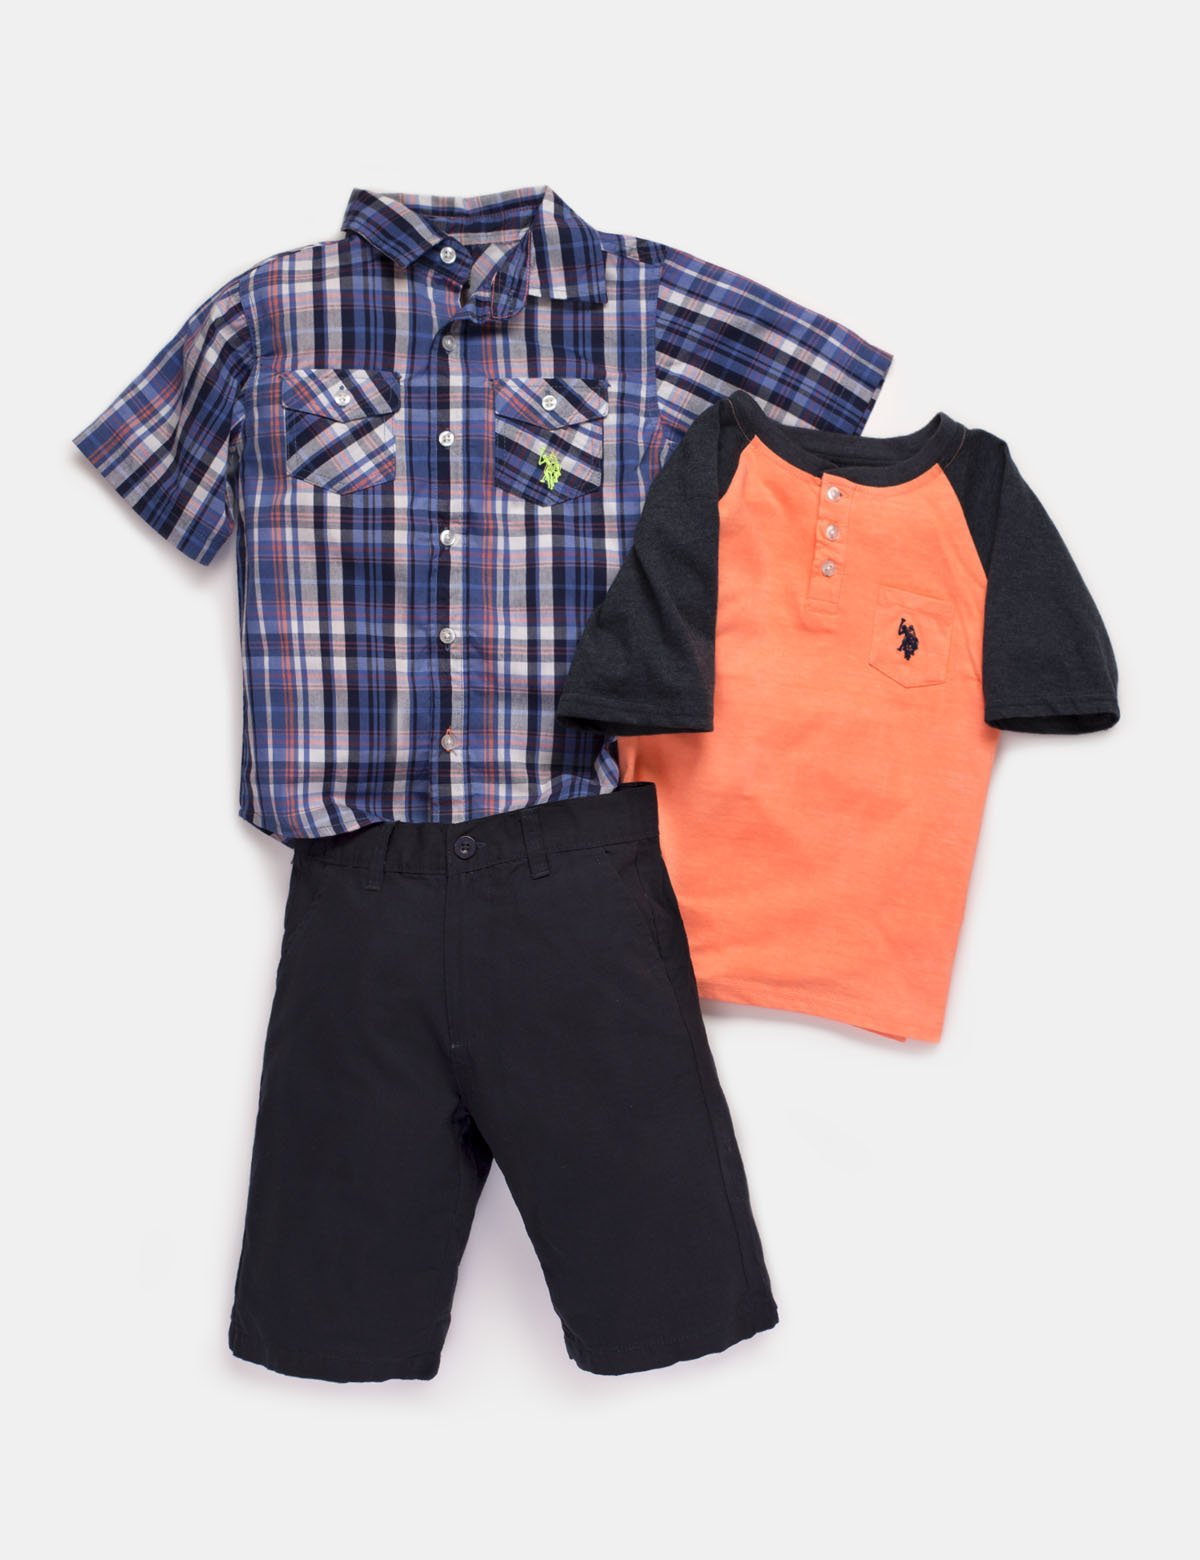 Toddler 3 Piece Set - Shirt, T-Shirt & Shorts - U.S. Polo Assn.